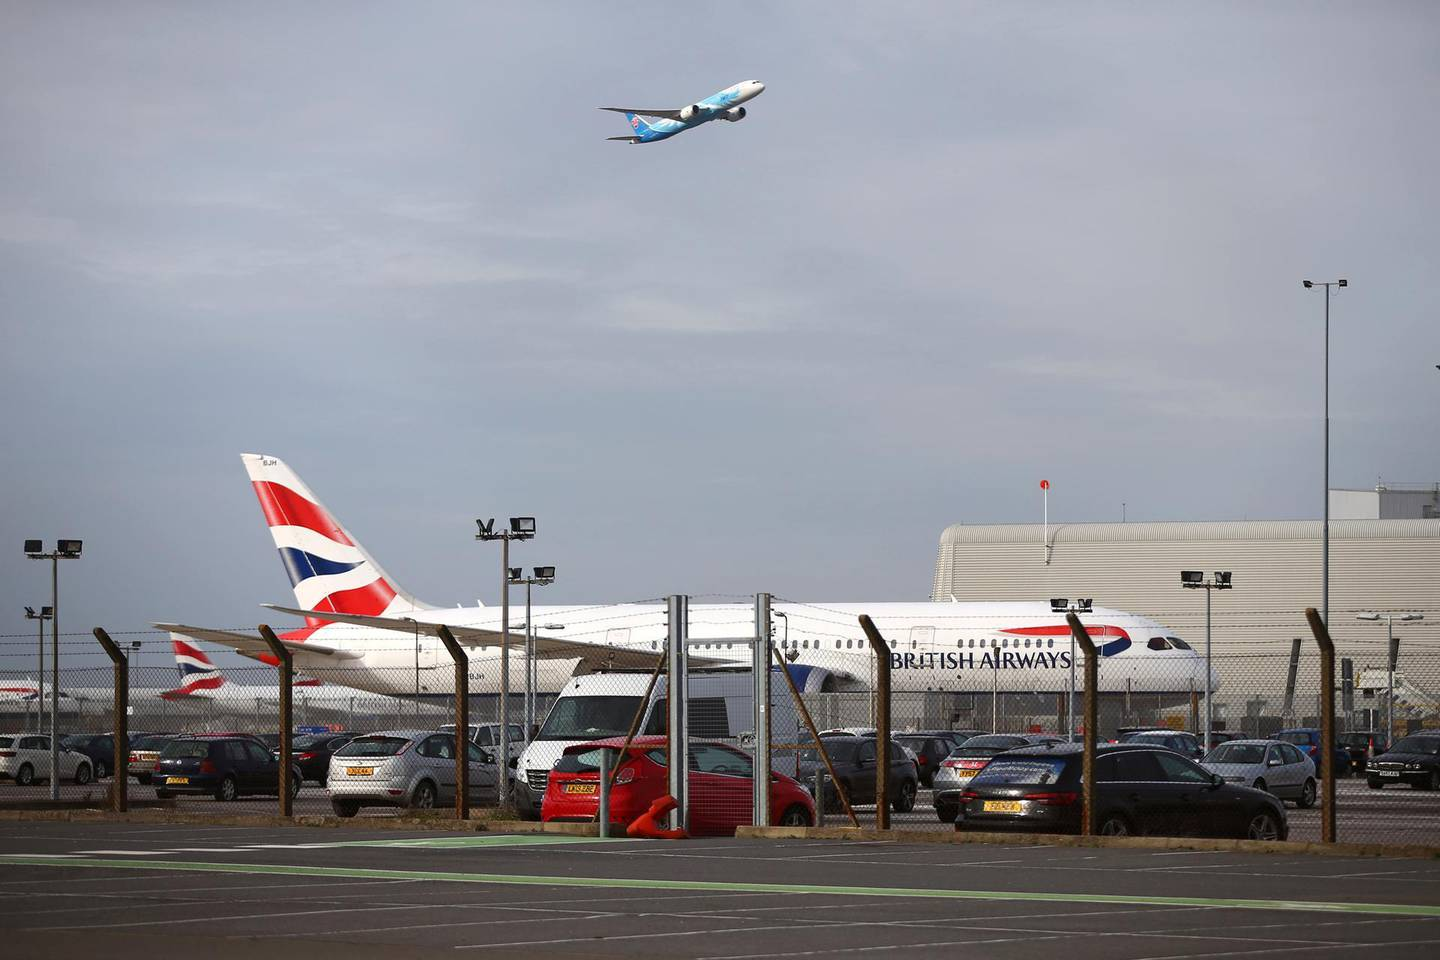 """LONDON, ENGLAND - FEBRUARY 13: A plane takes off in view of a British Airways aeroplane at Heathrow Airport on February 13, 2021 in London, England. From 15 February travellers to the UK from a country on the UK's travel ban """"red list"""" will be required to quarantine in a government-approved facility for ten days at their own cost. (Photo by Hollie Adams/Getty Images)"""